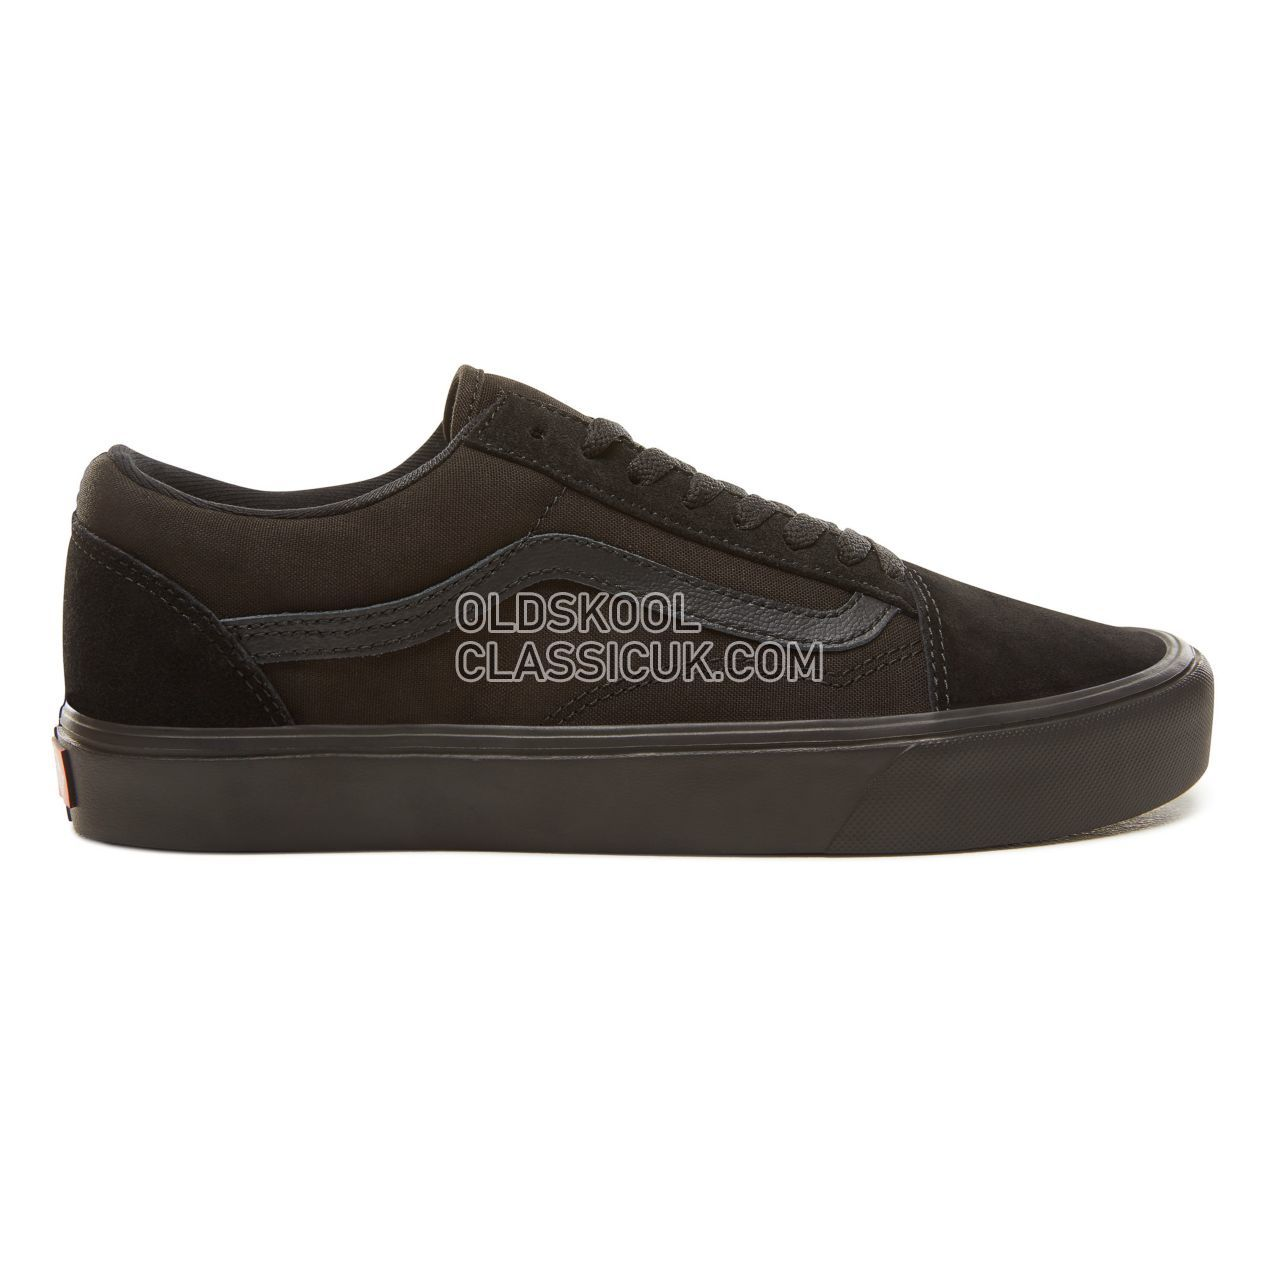 Vans Suede Old Skool Lite Sneakers Mens Womens Unisex (Suede/Canvas) Black/Black VA2Z5WGL4 Shoes